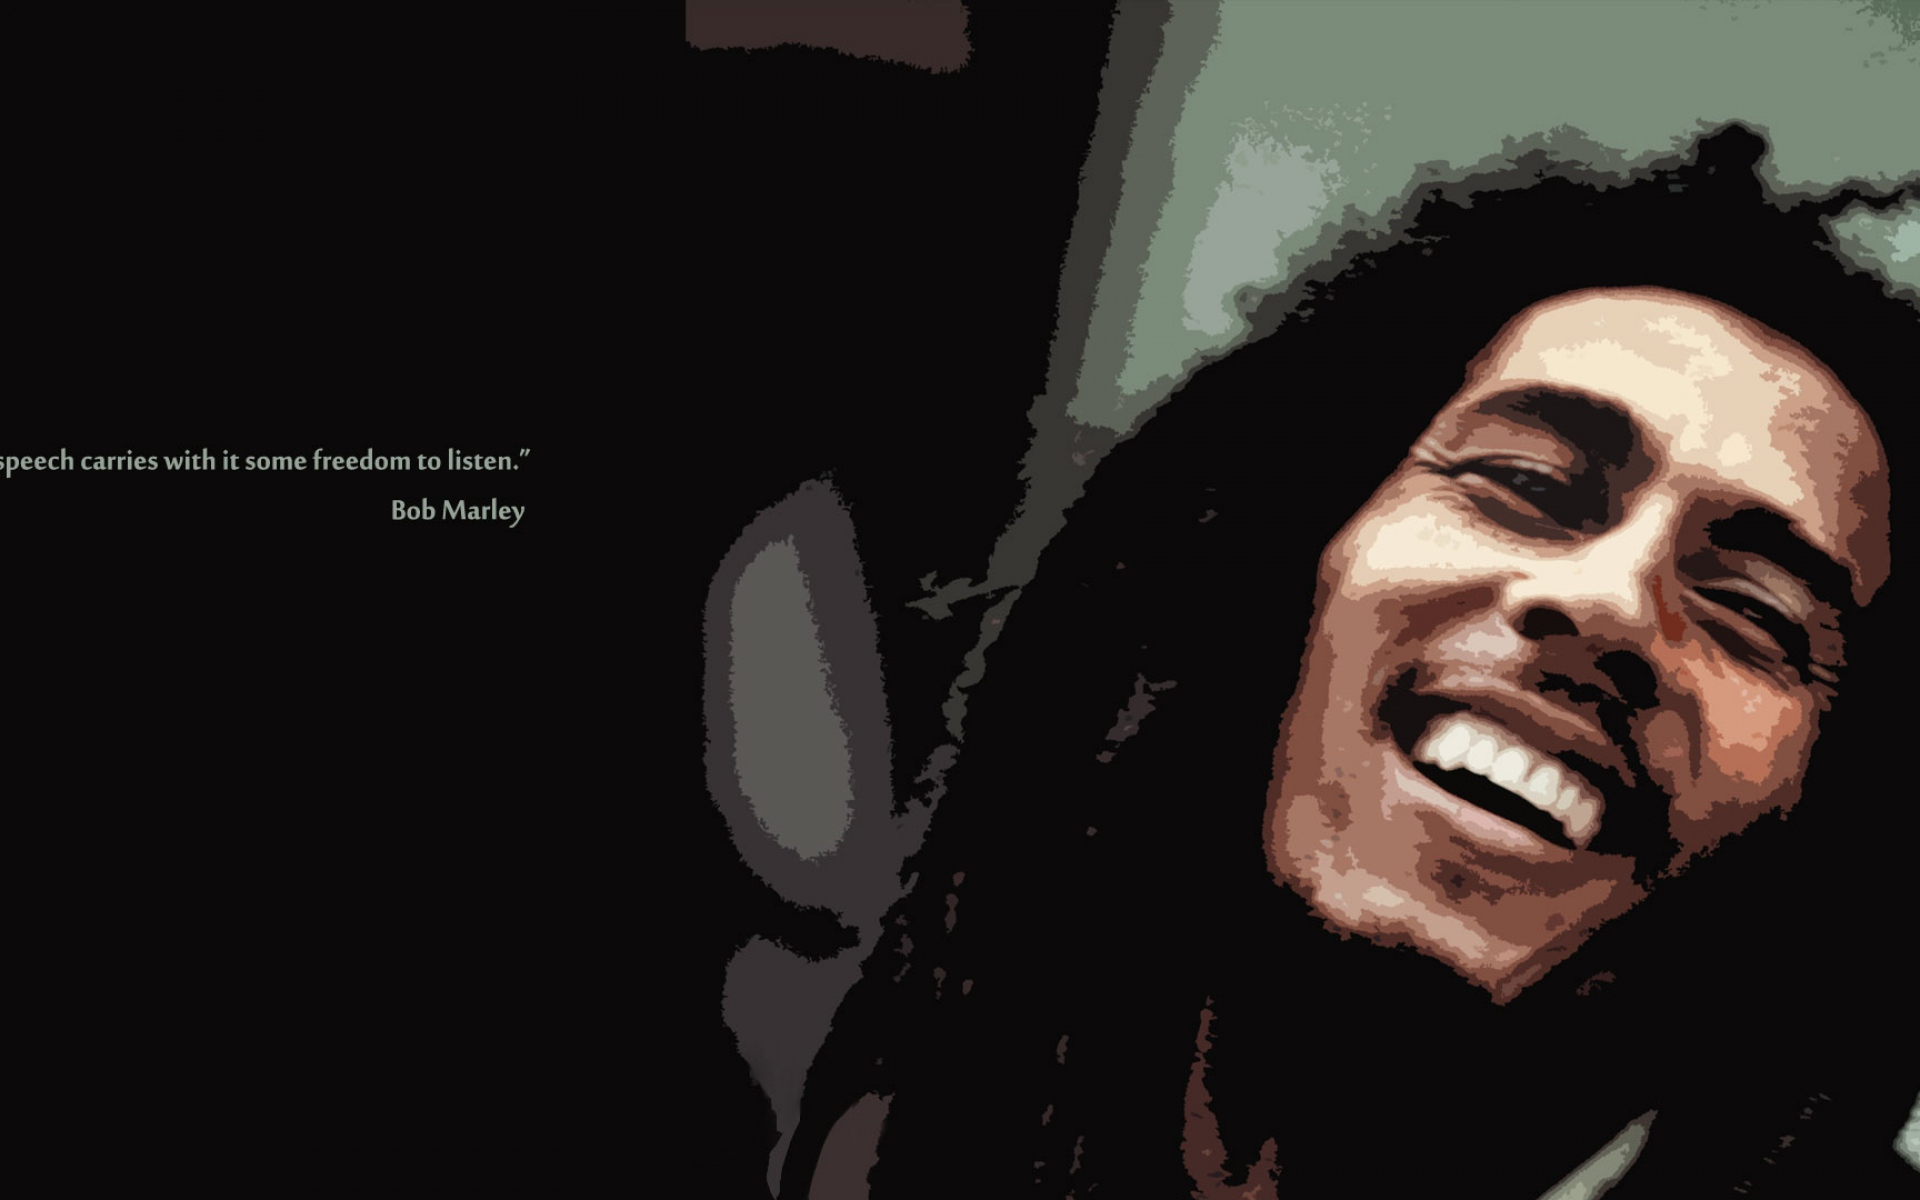 bob marley wallpaper quotes